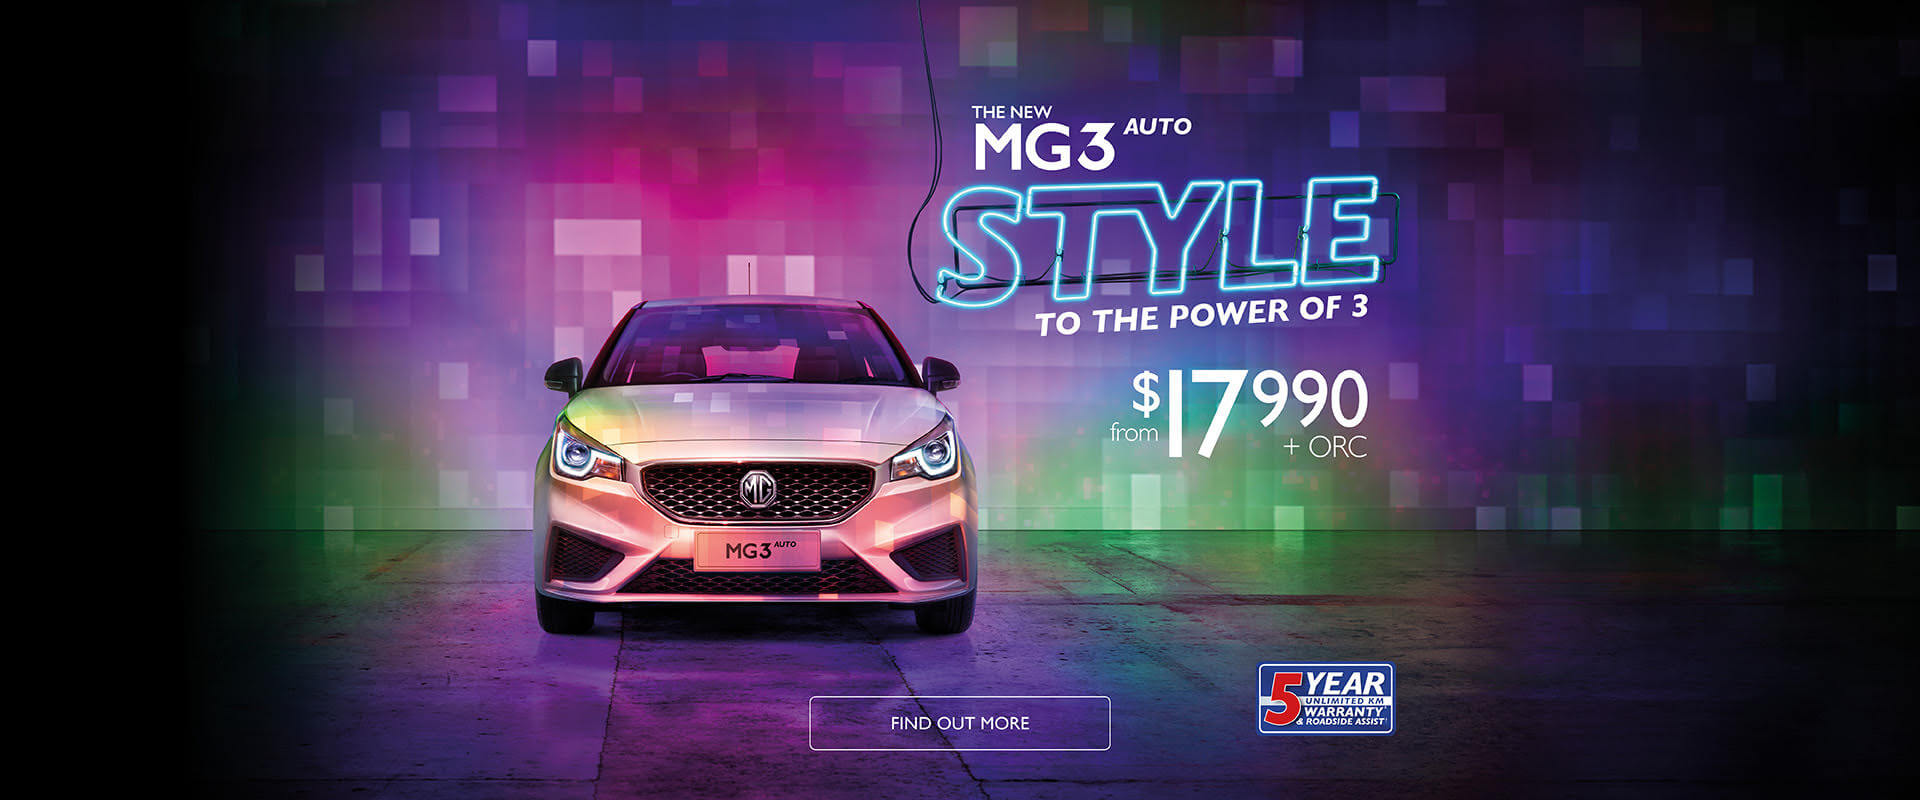 New MG MG3 Auto hatch